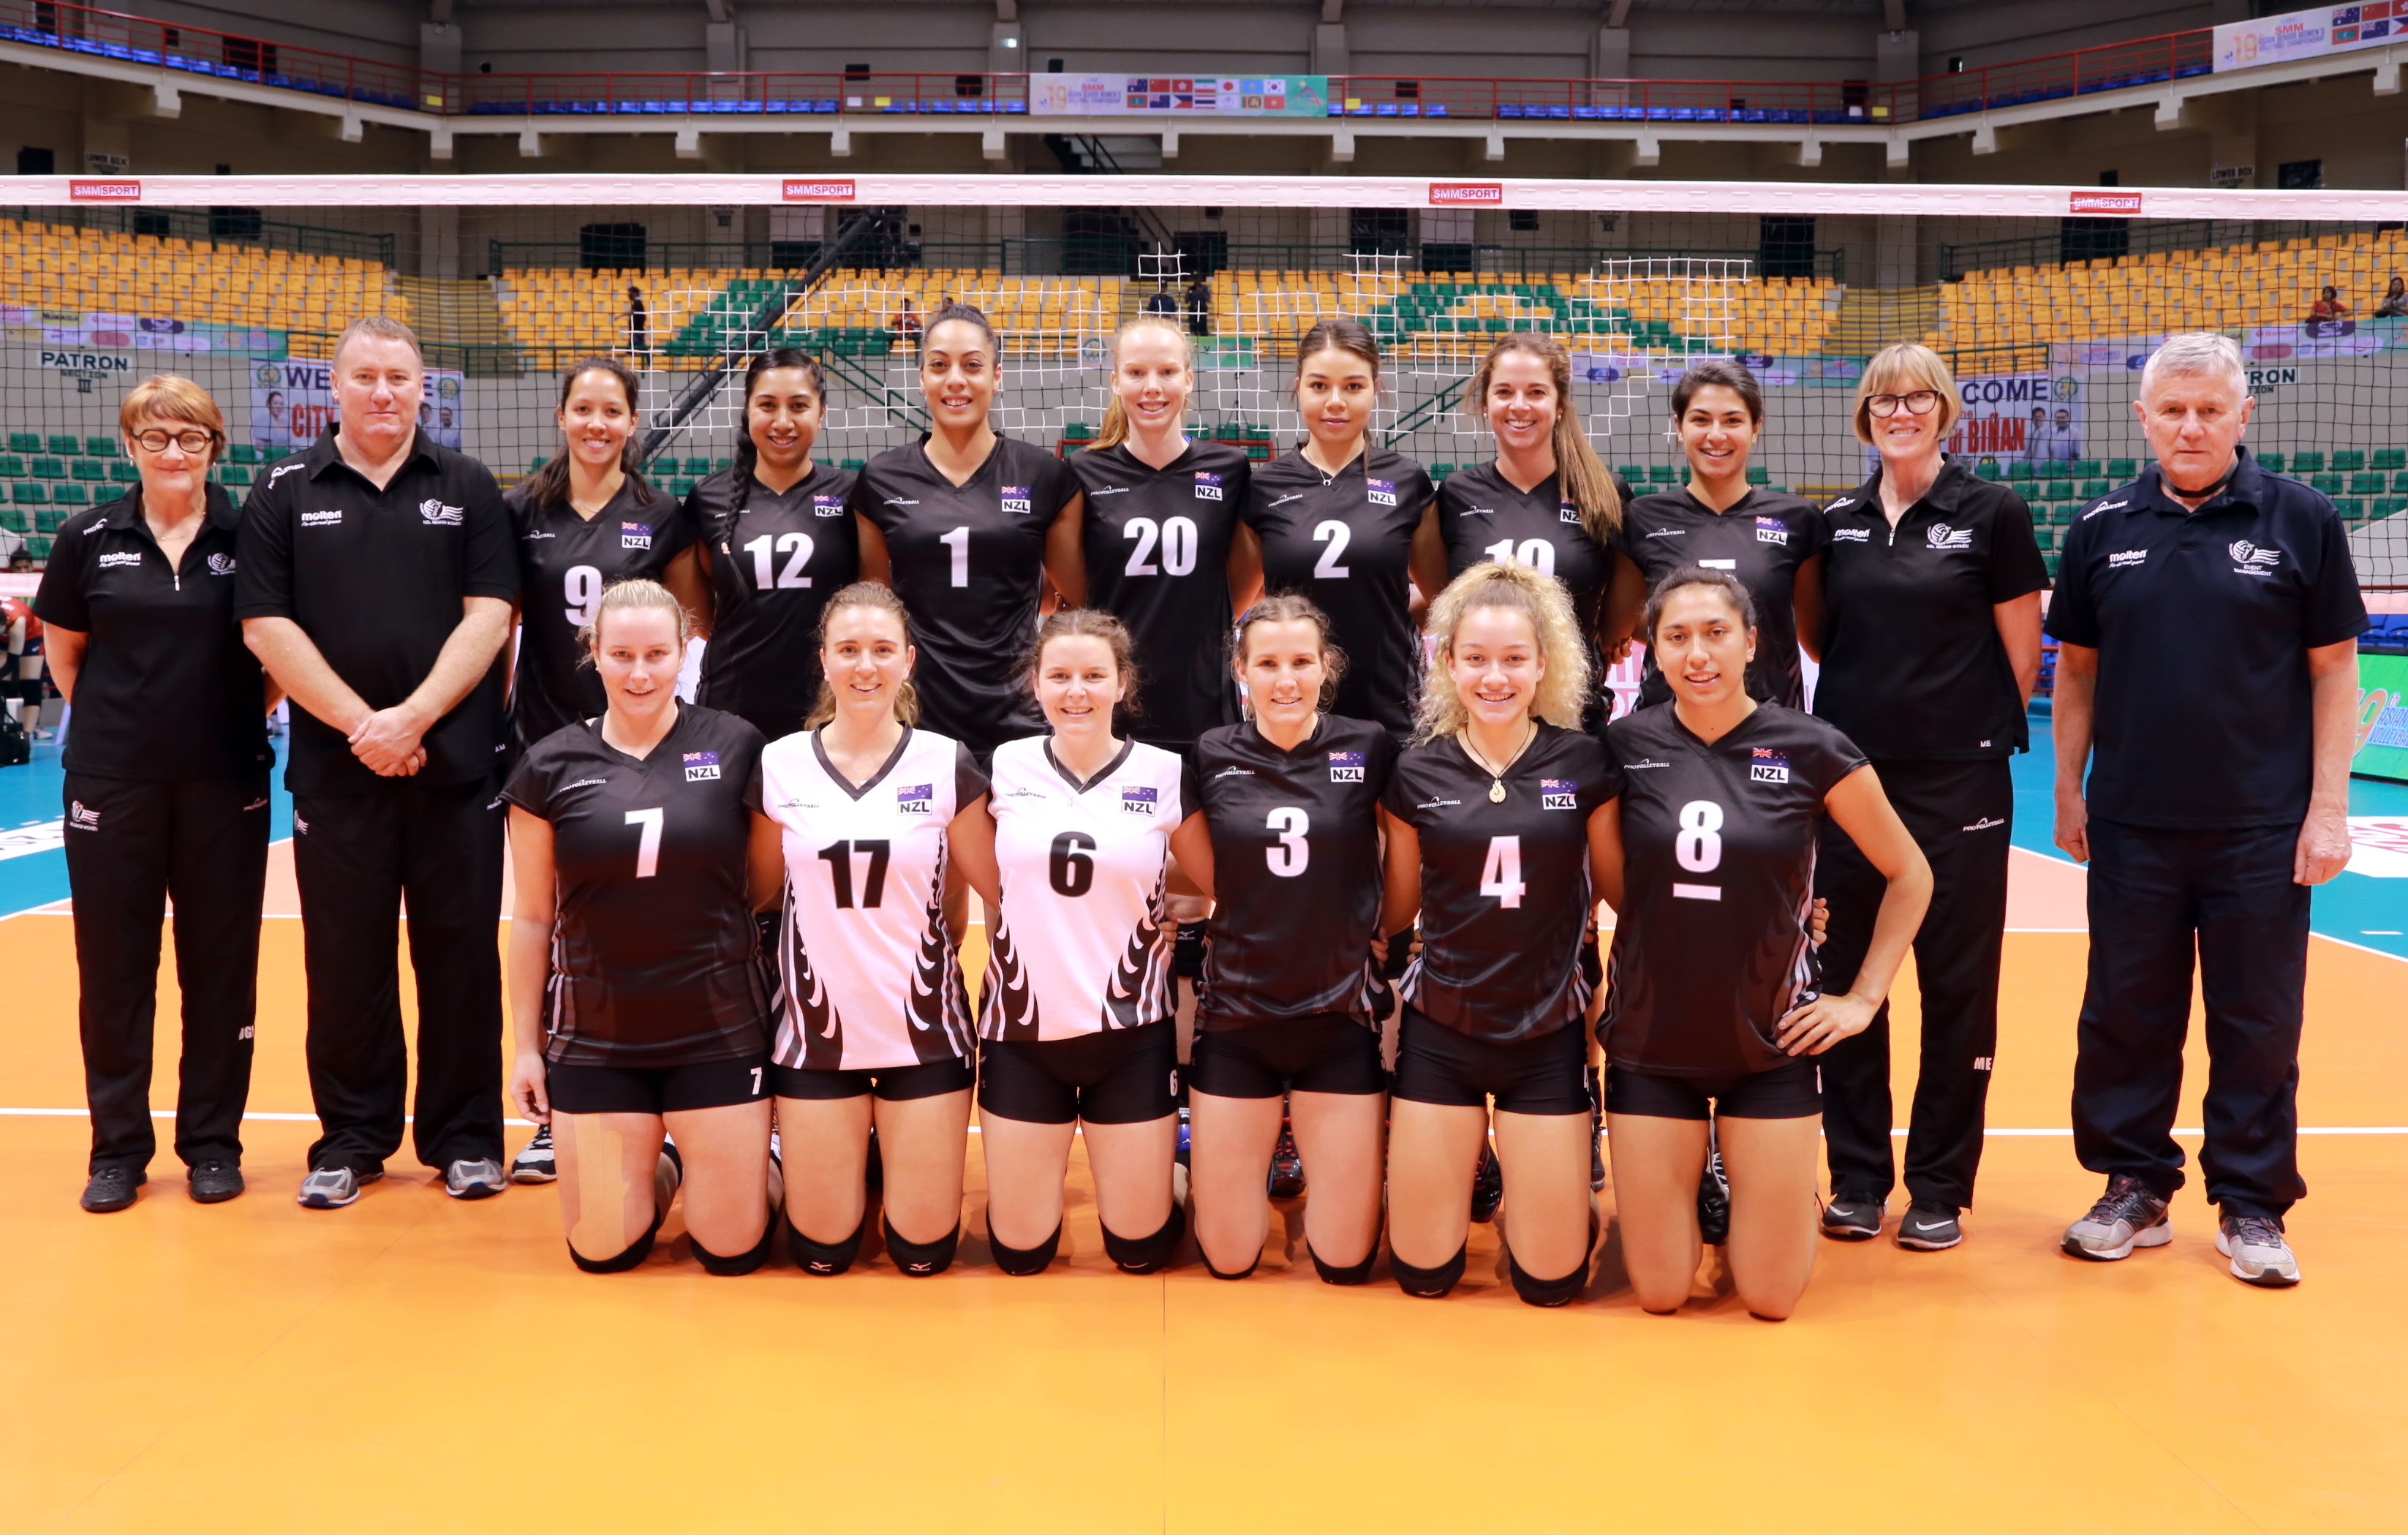 Volleyball New Zealand 2017 Performance